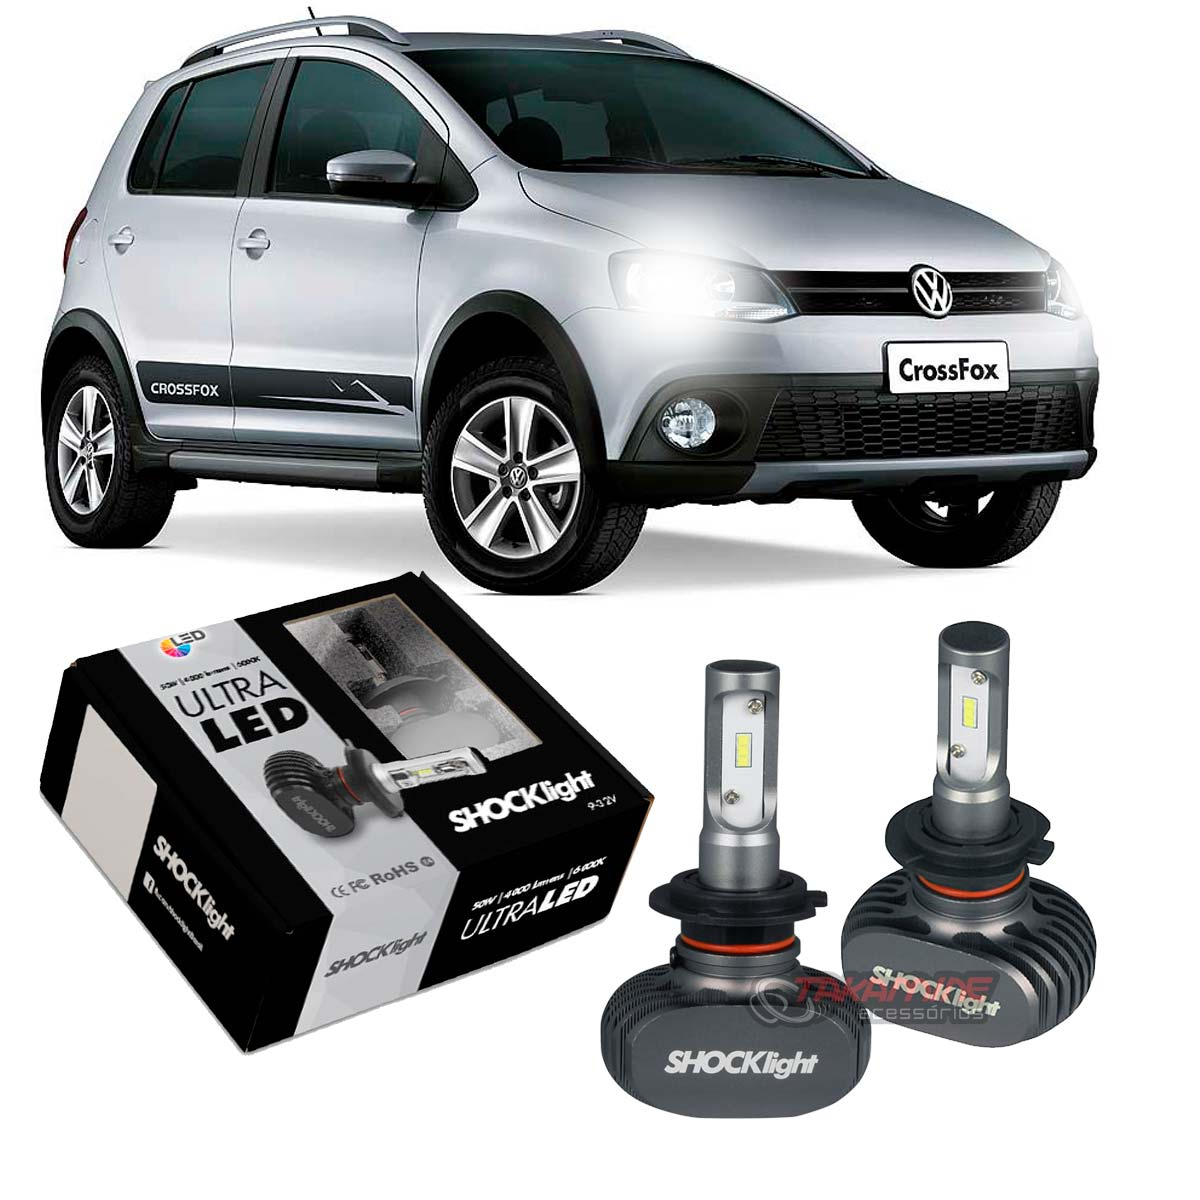 Kit Ultra LED Crossfox 2010 2011 2012 2013 2014 2015 tipo xenon farol baixo H7 50W